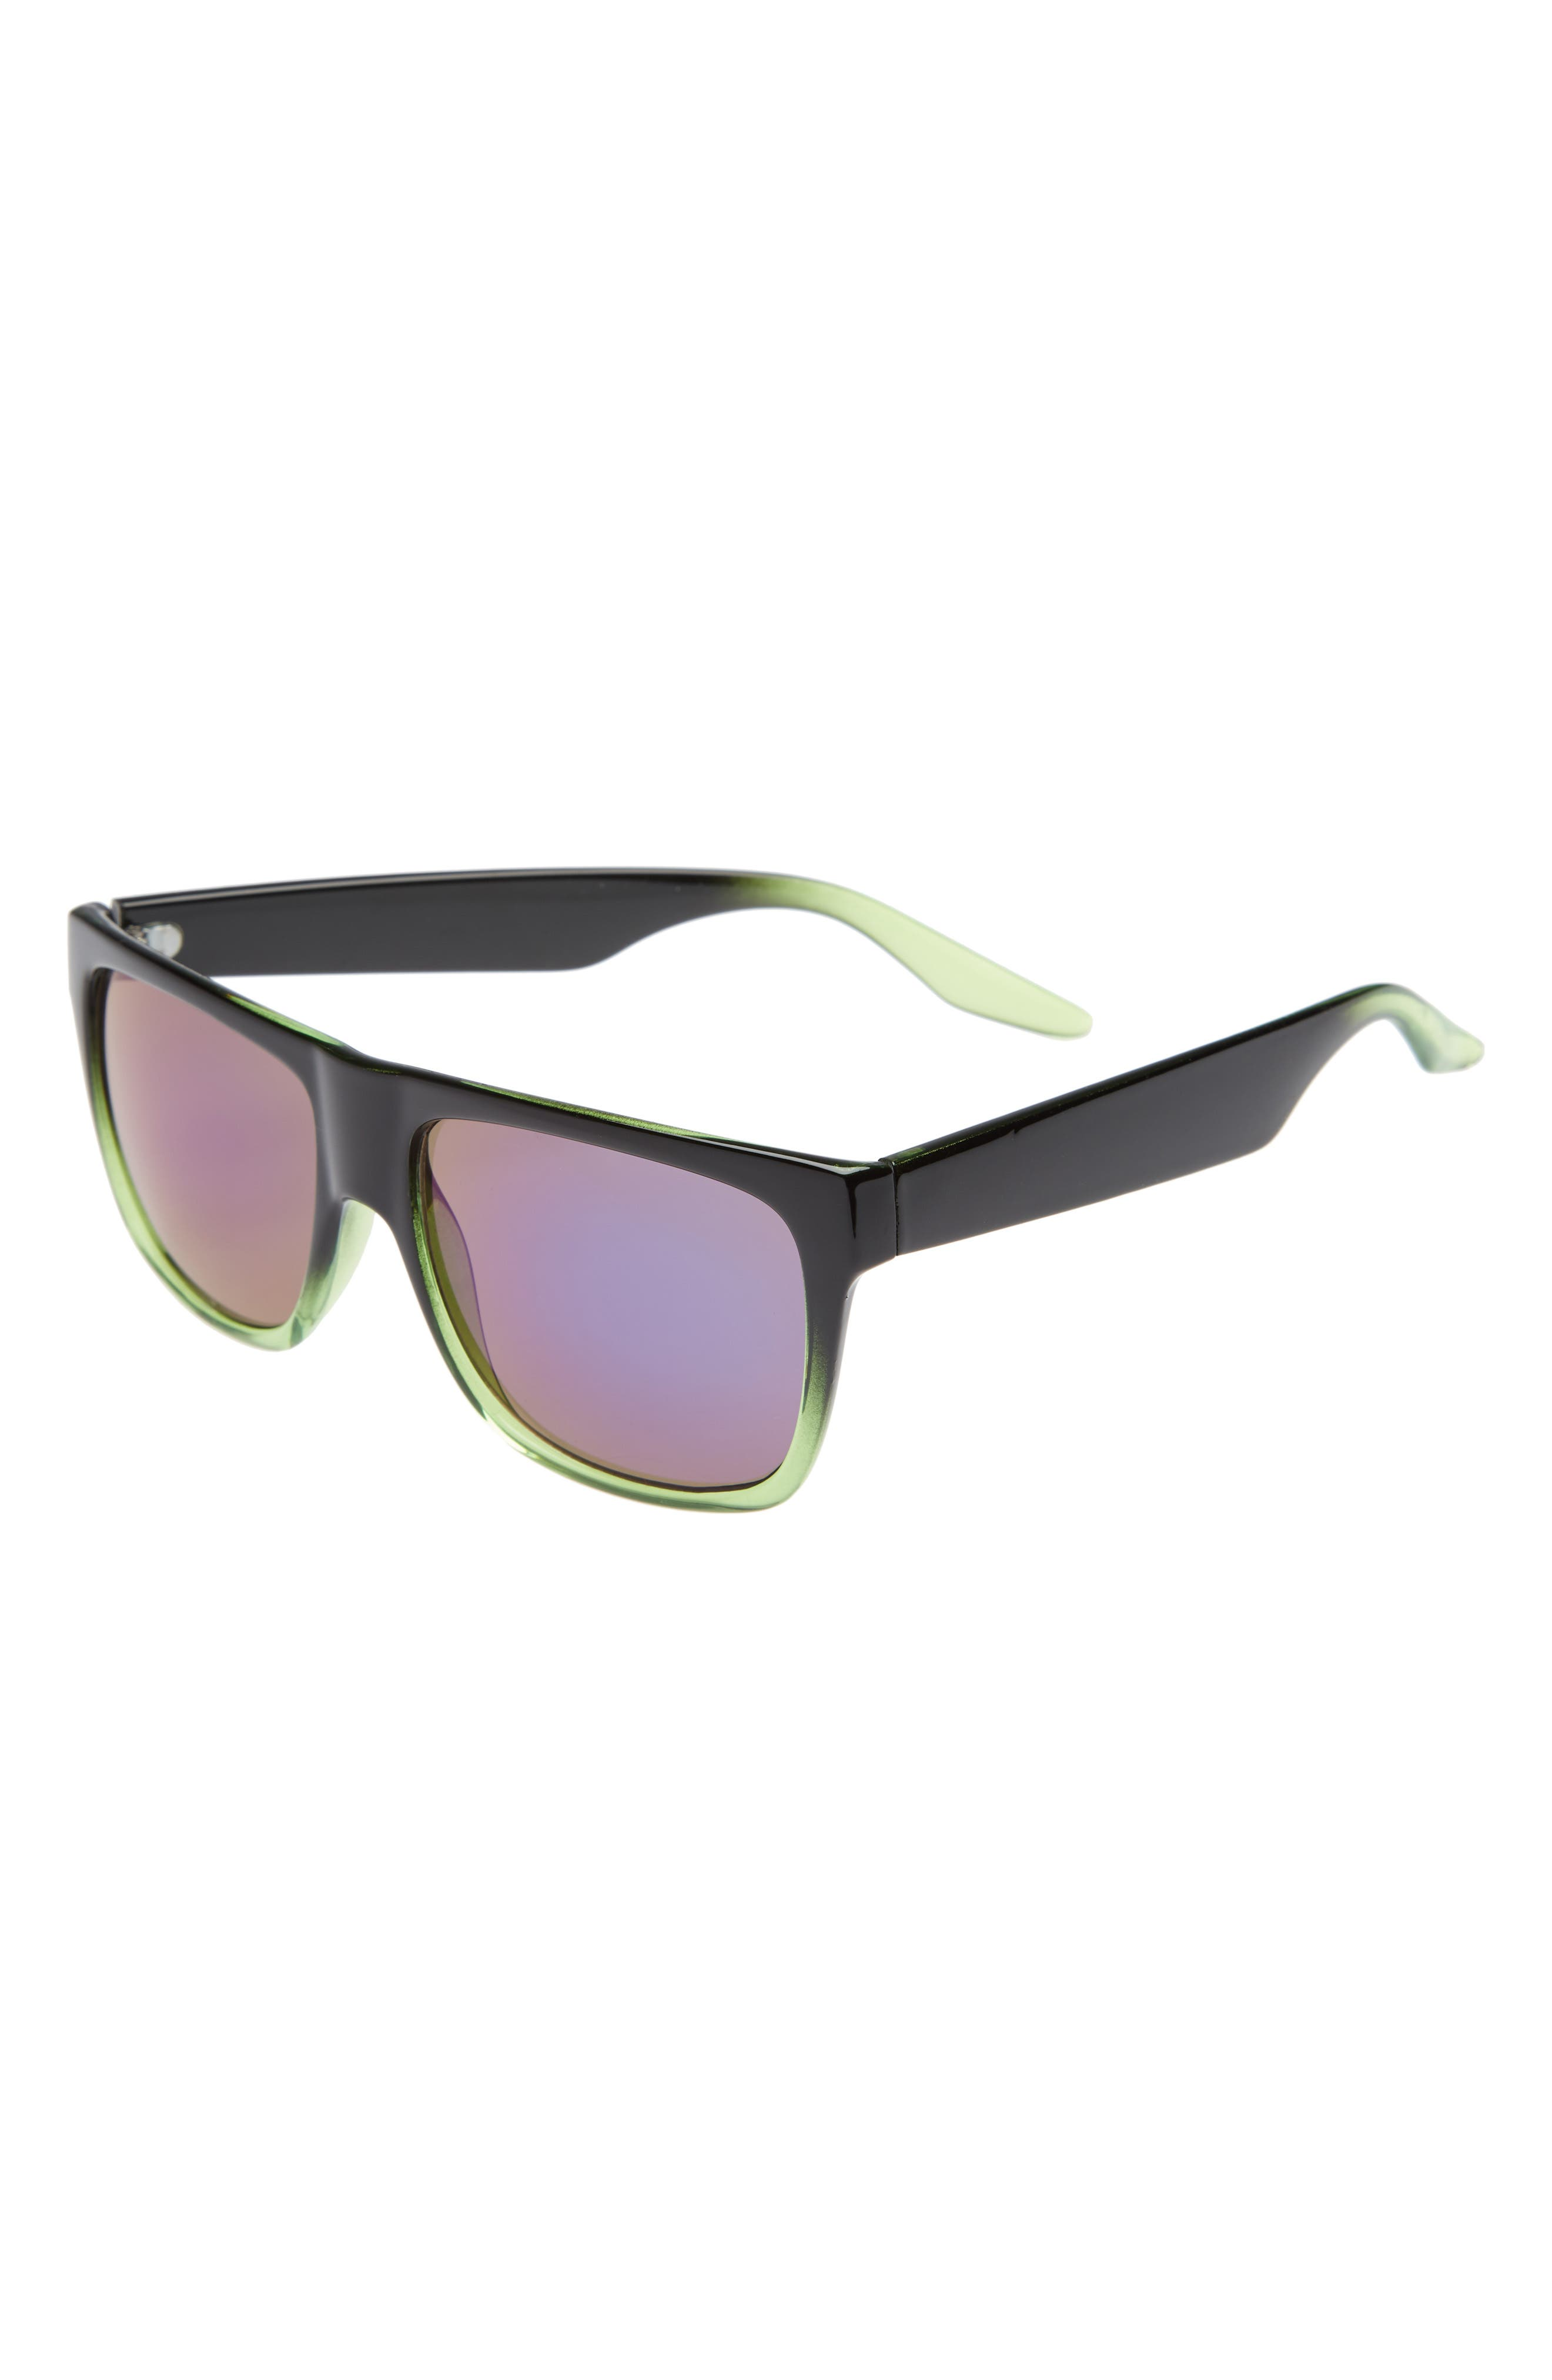 Ombré Frame Sunglasses,                         Main,                         color,